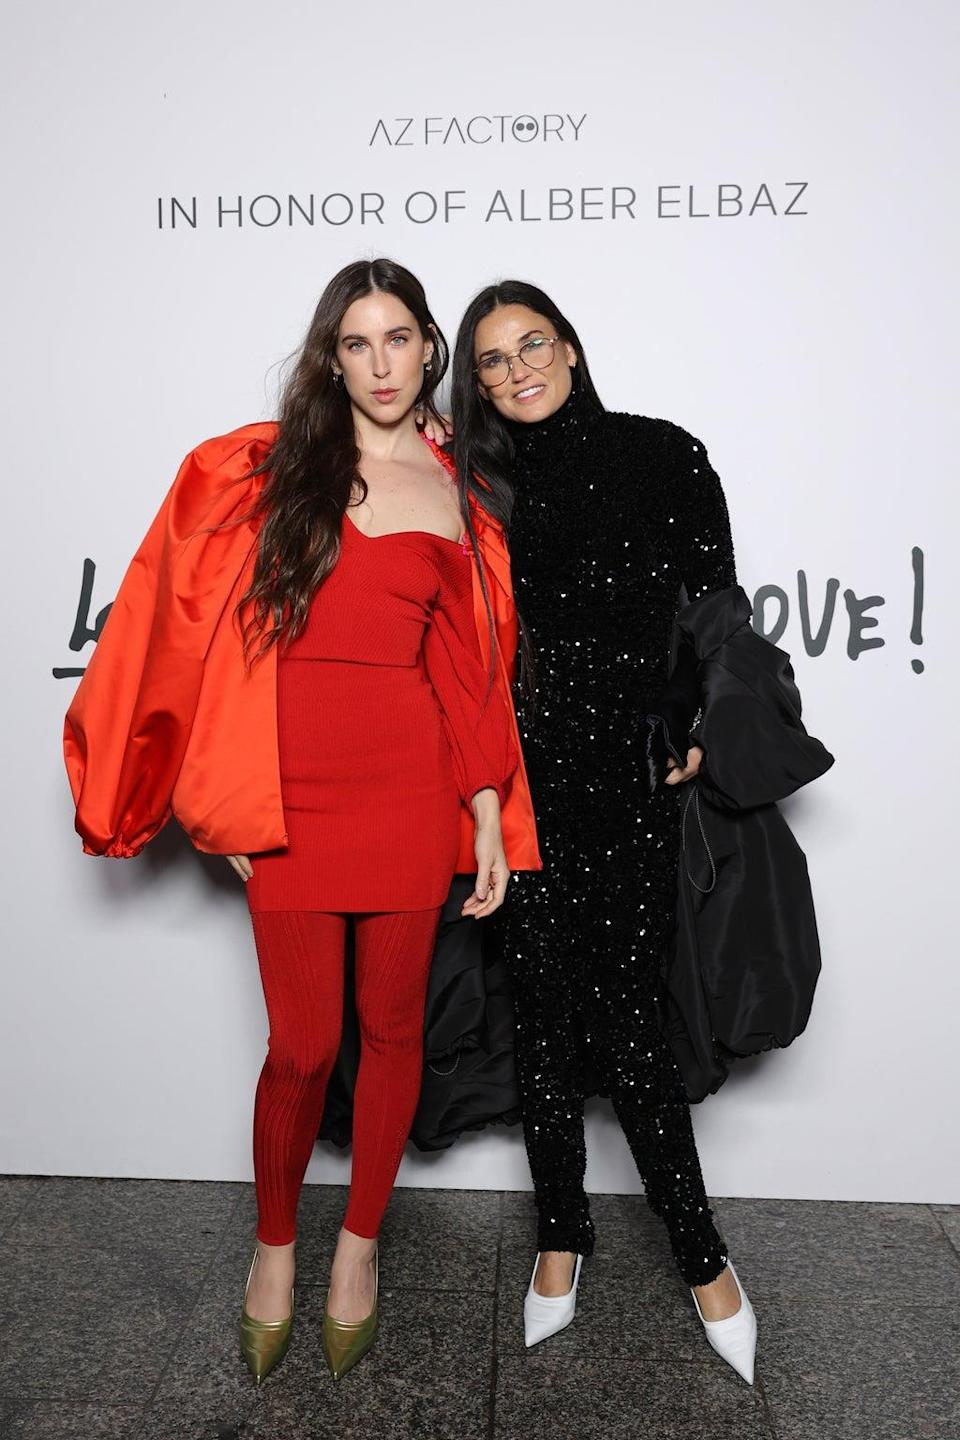 Scout LaRue Willis and Demi Moore (Getty Images For AZ Factory)